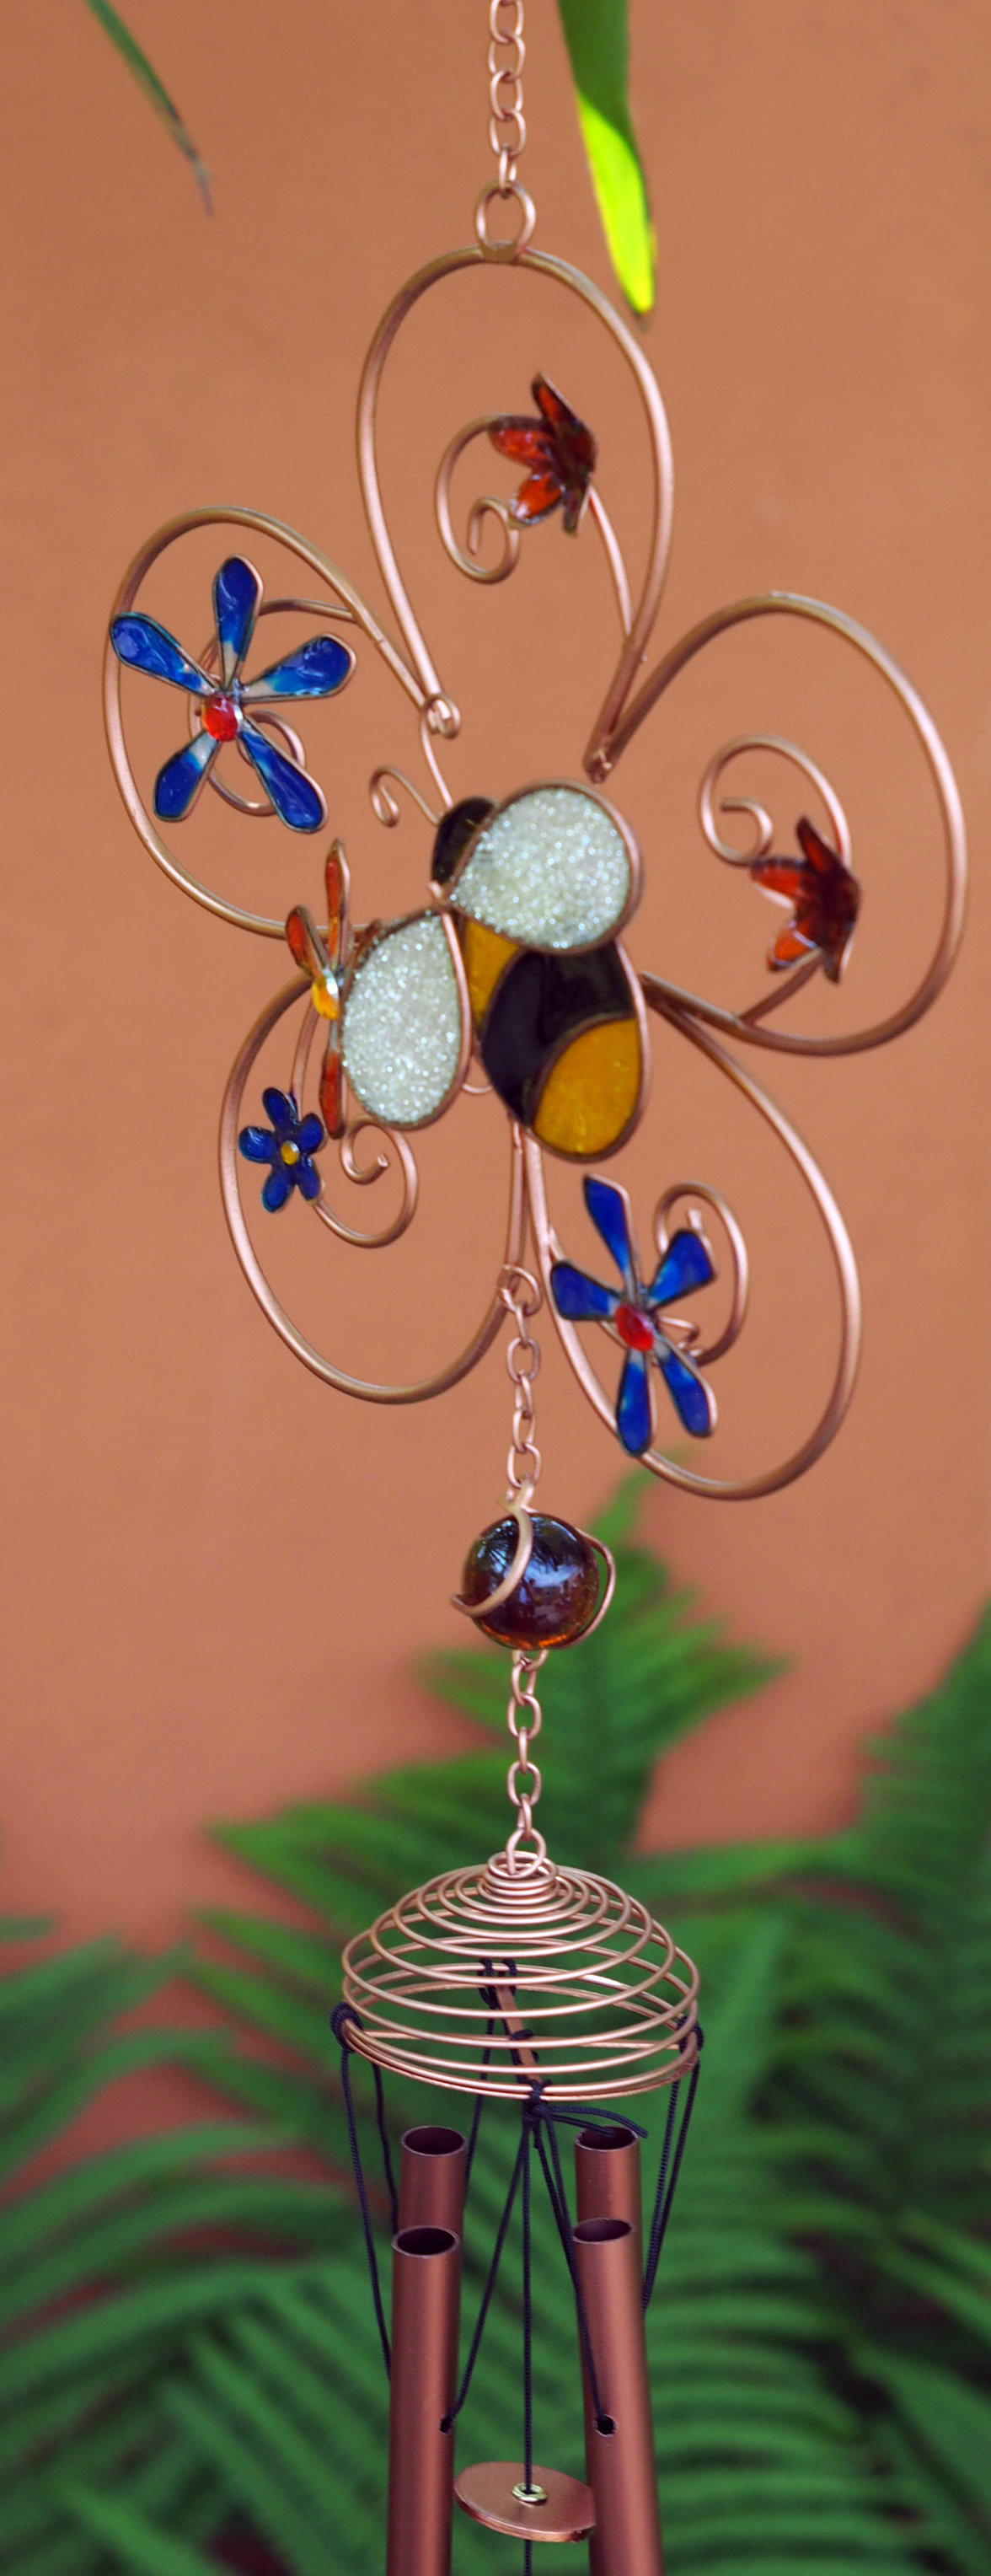 Large-Metal-amp-Glass-Hanging-Sun-Catcher-Wind-Chime-Home-Garden-Decorations thumbnail 42